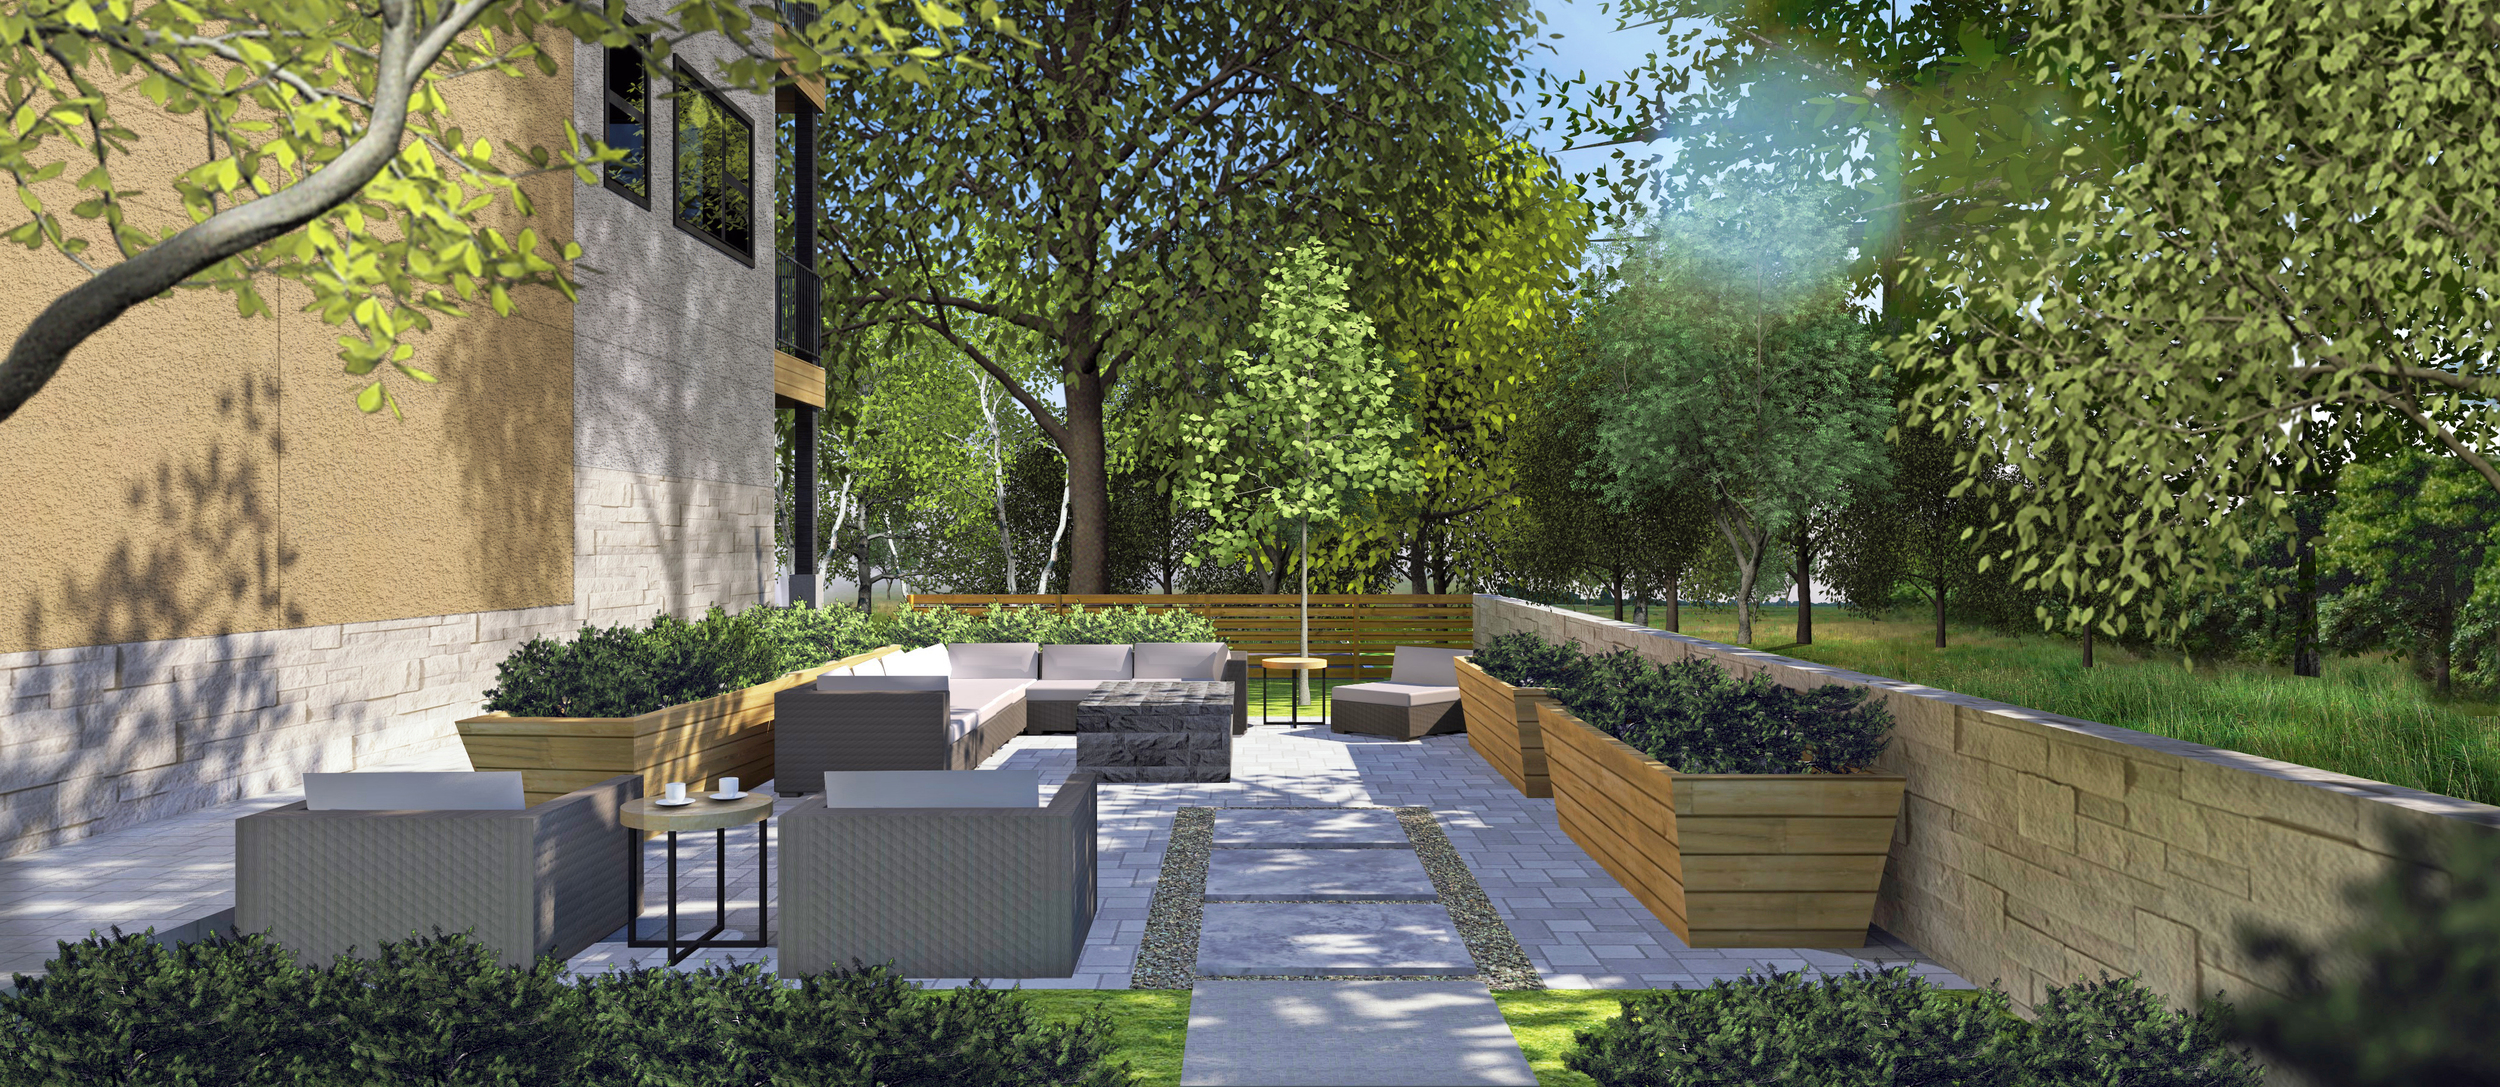 2033 Henderson Patio Rendering.jpg